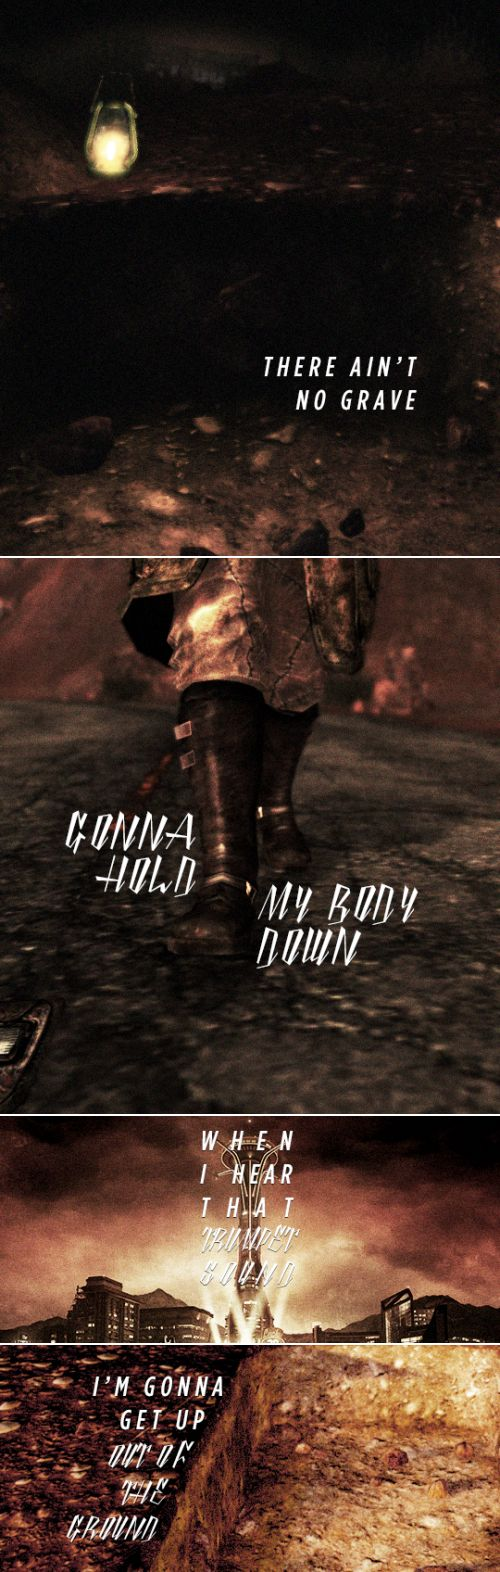 New Vegas: Oh Gabriel, don't you blow your trumpet 'til you hear from me. #fallout